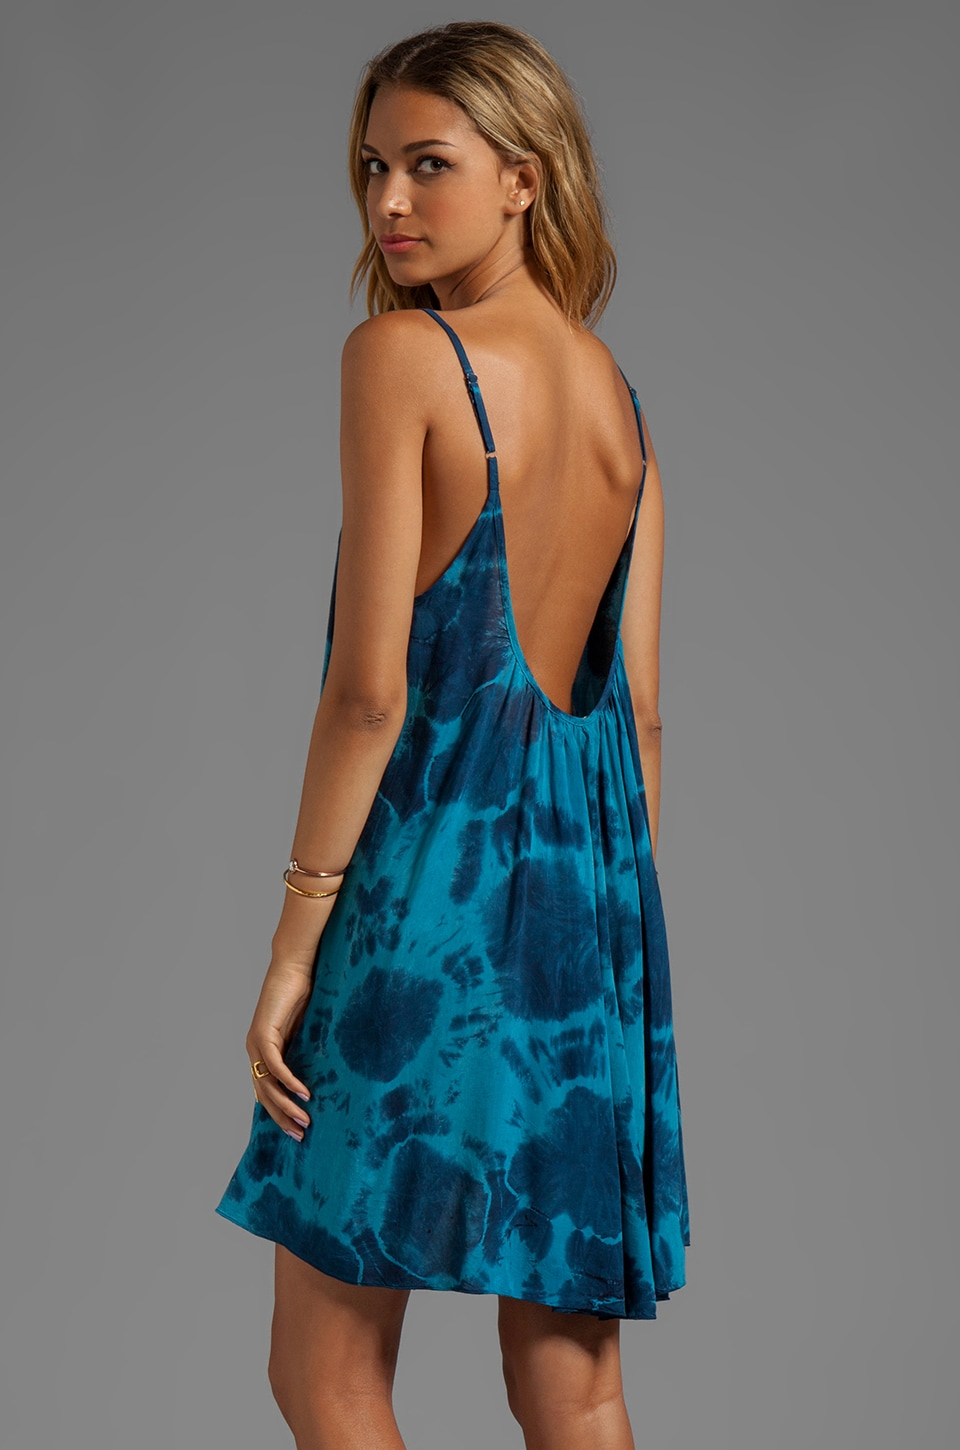 Blu Moon Babydoll Tank Dress in Infinity